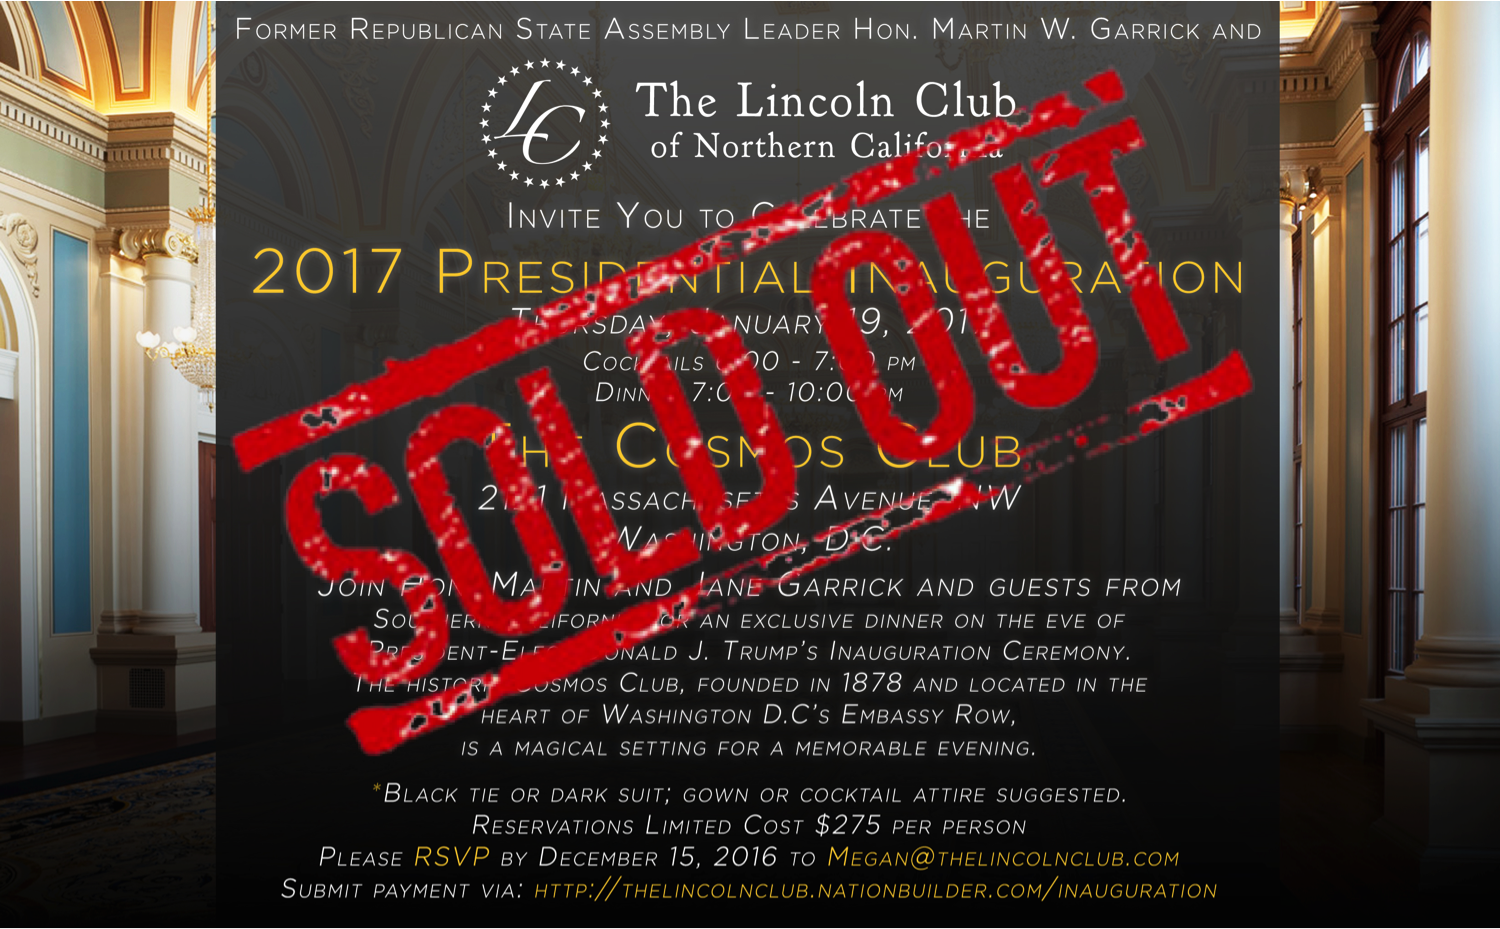 Sold_Out_Event.png